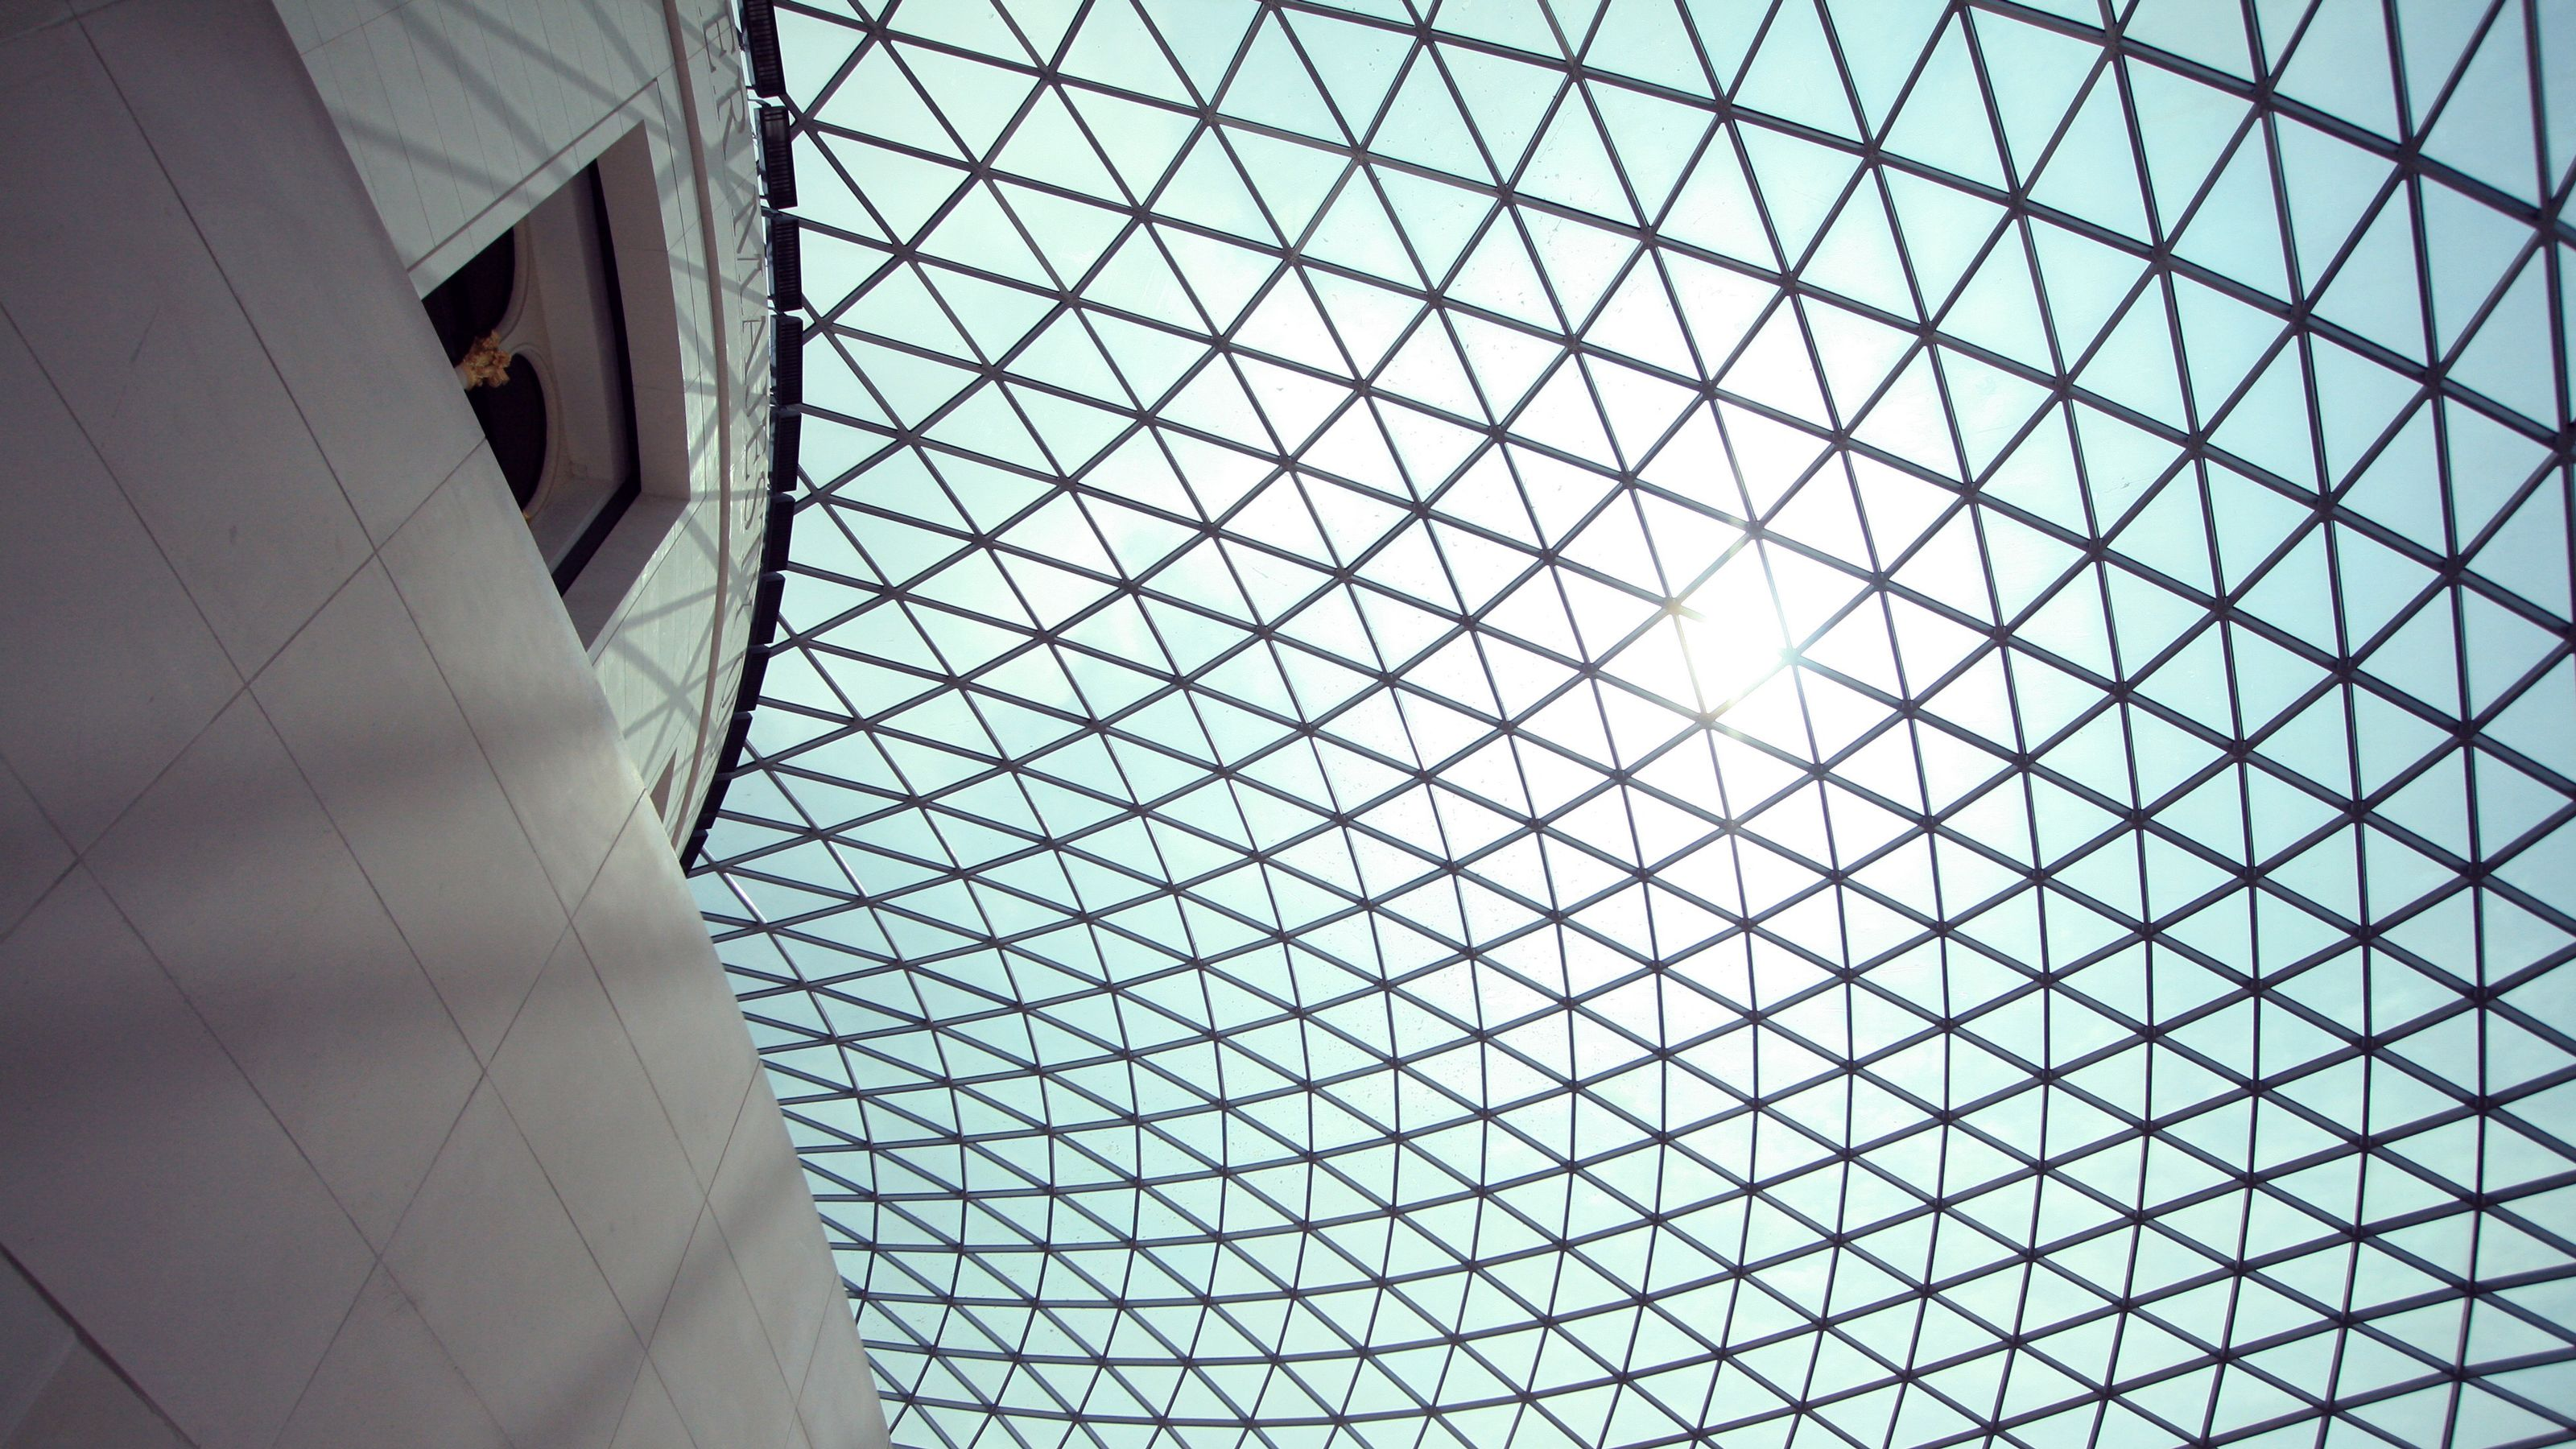 triangle glass ceiling at museum in London